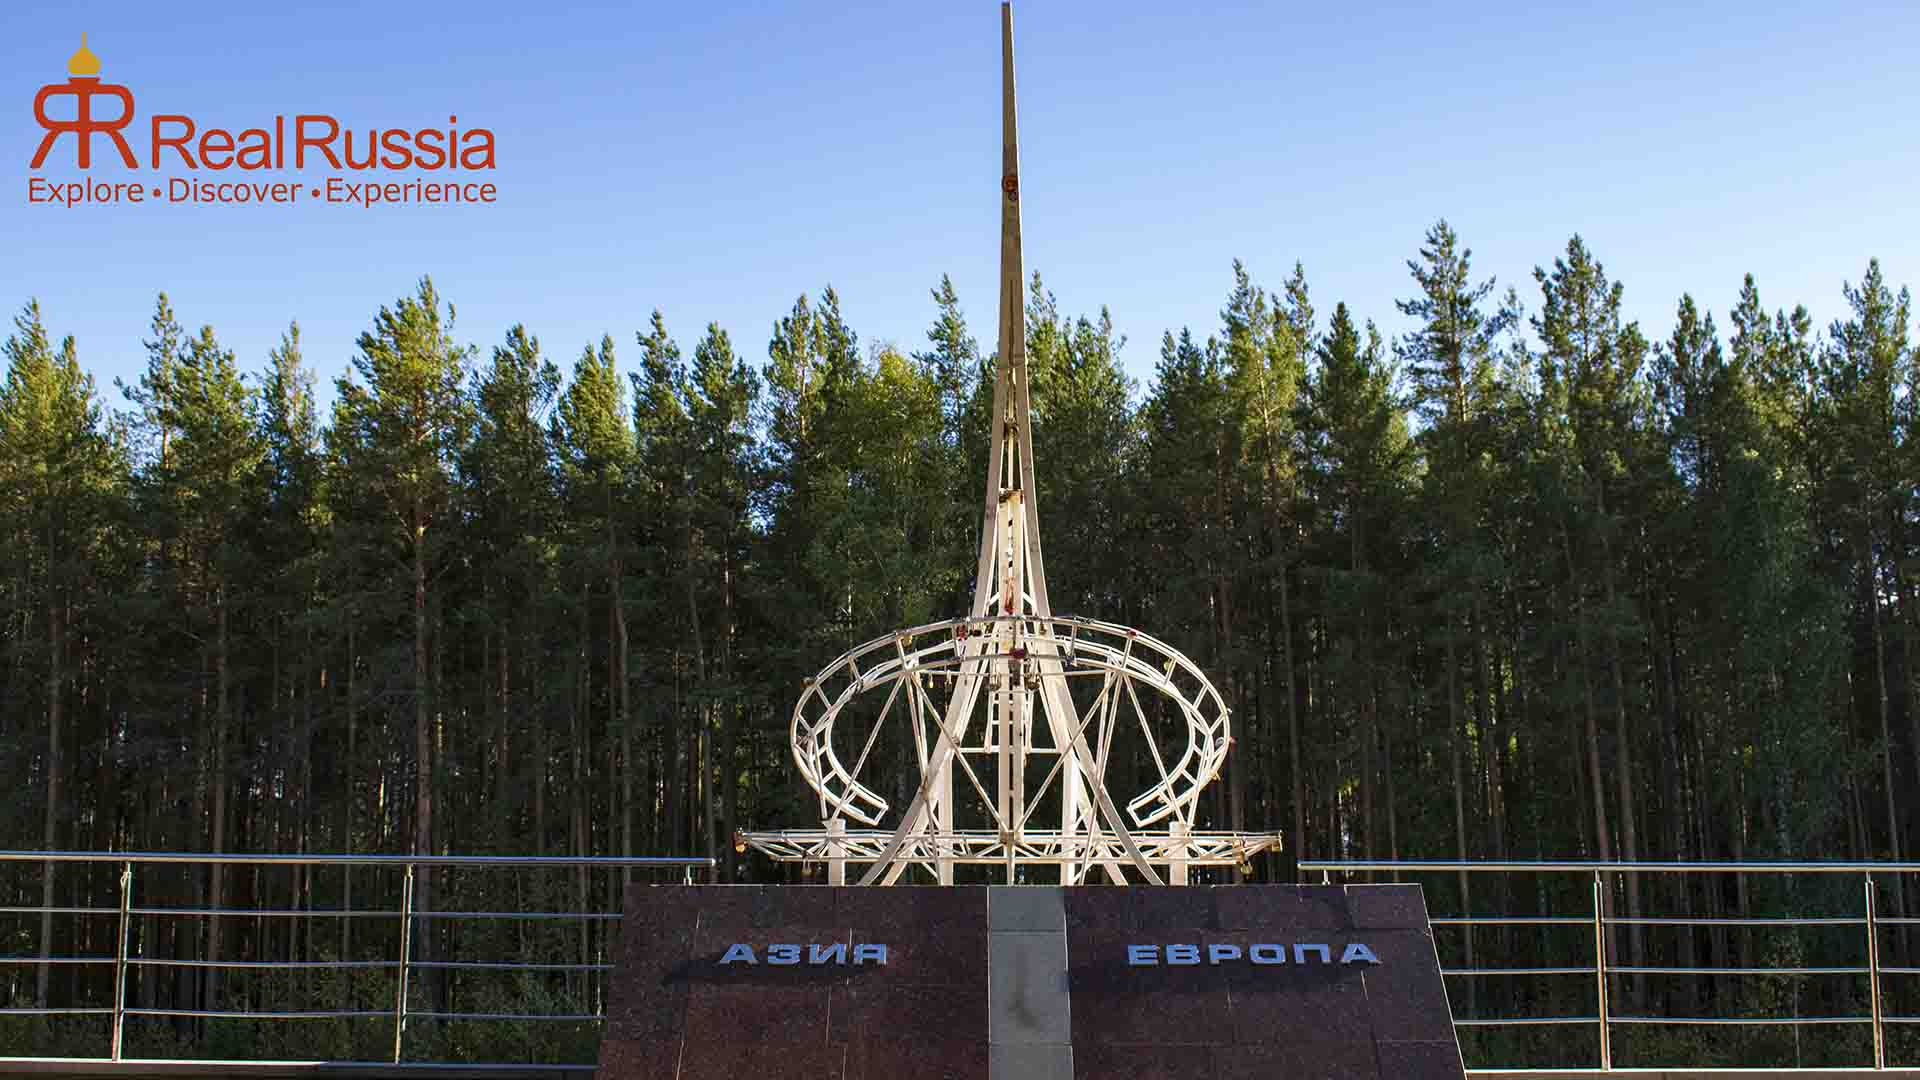 The border between Europe and Asia, Yekaterinburg